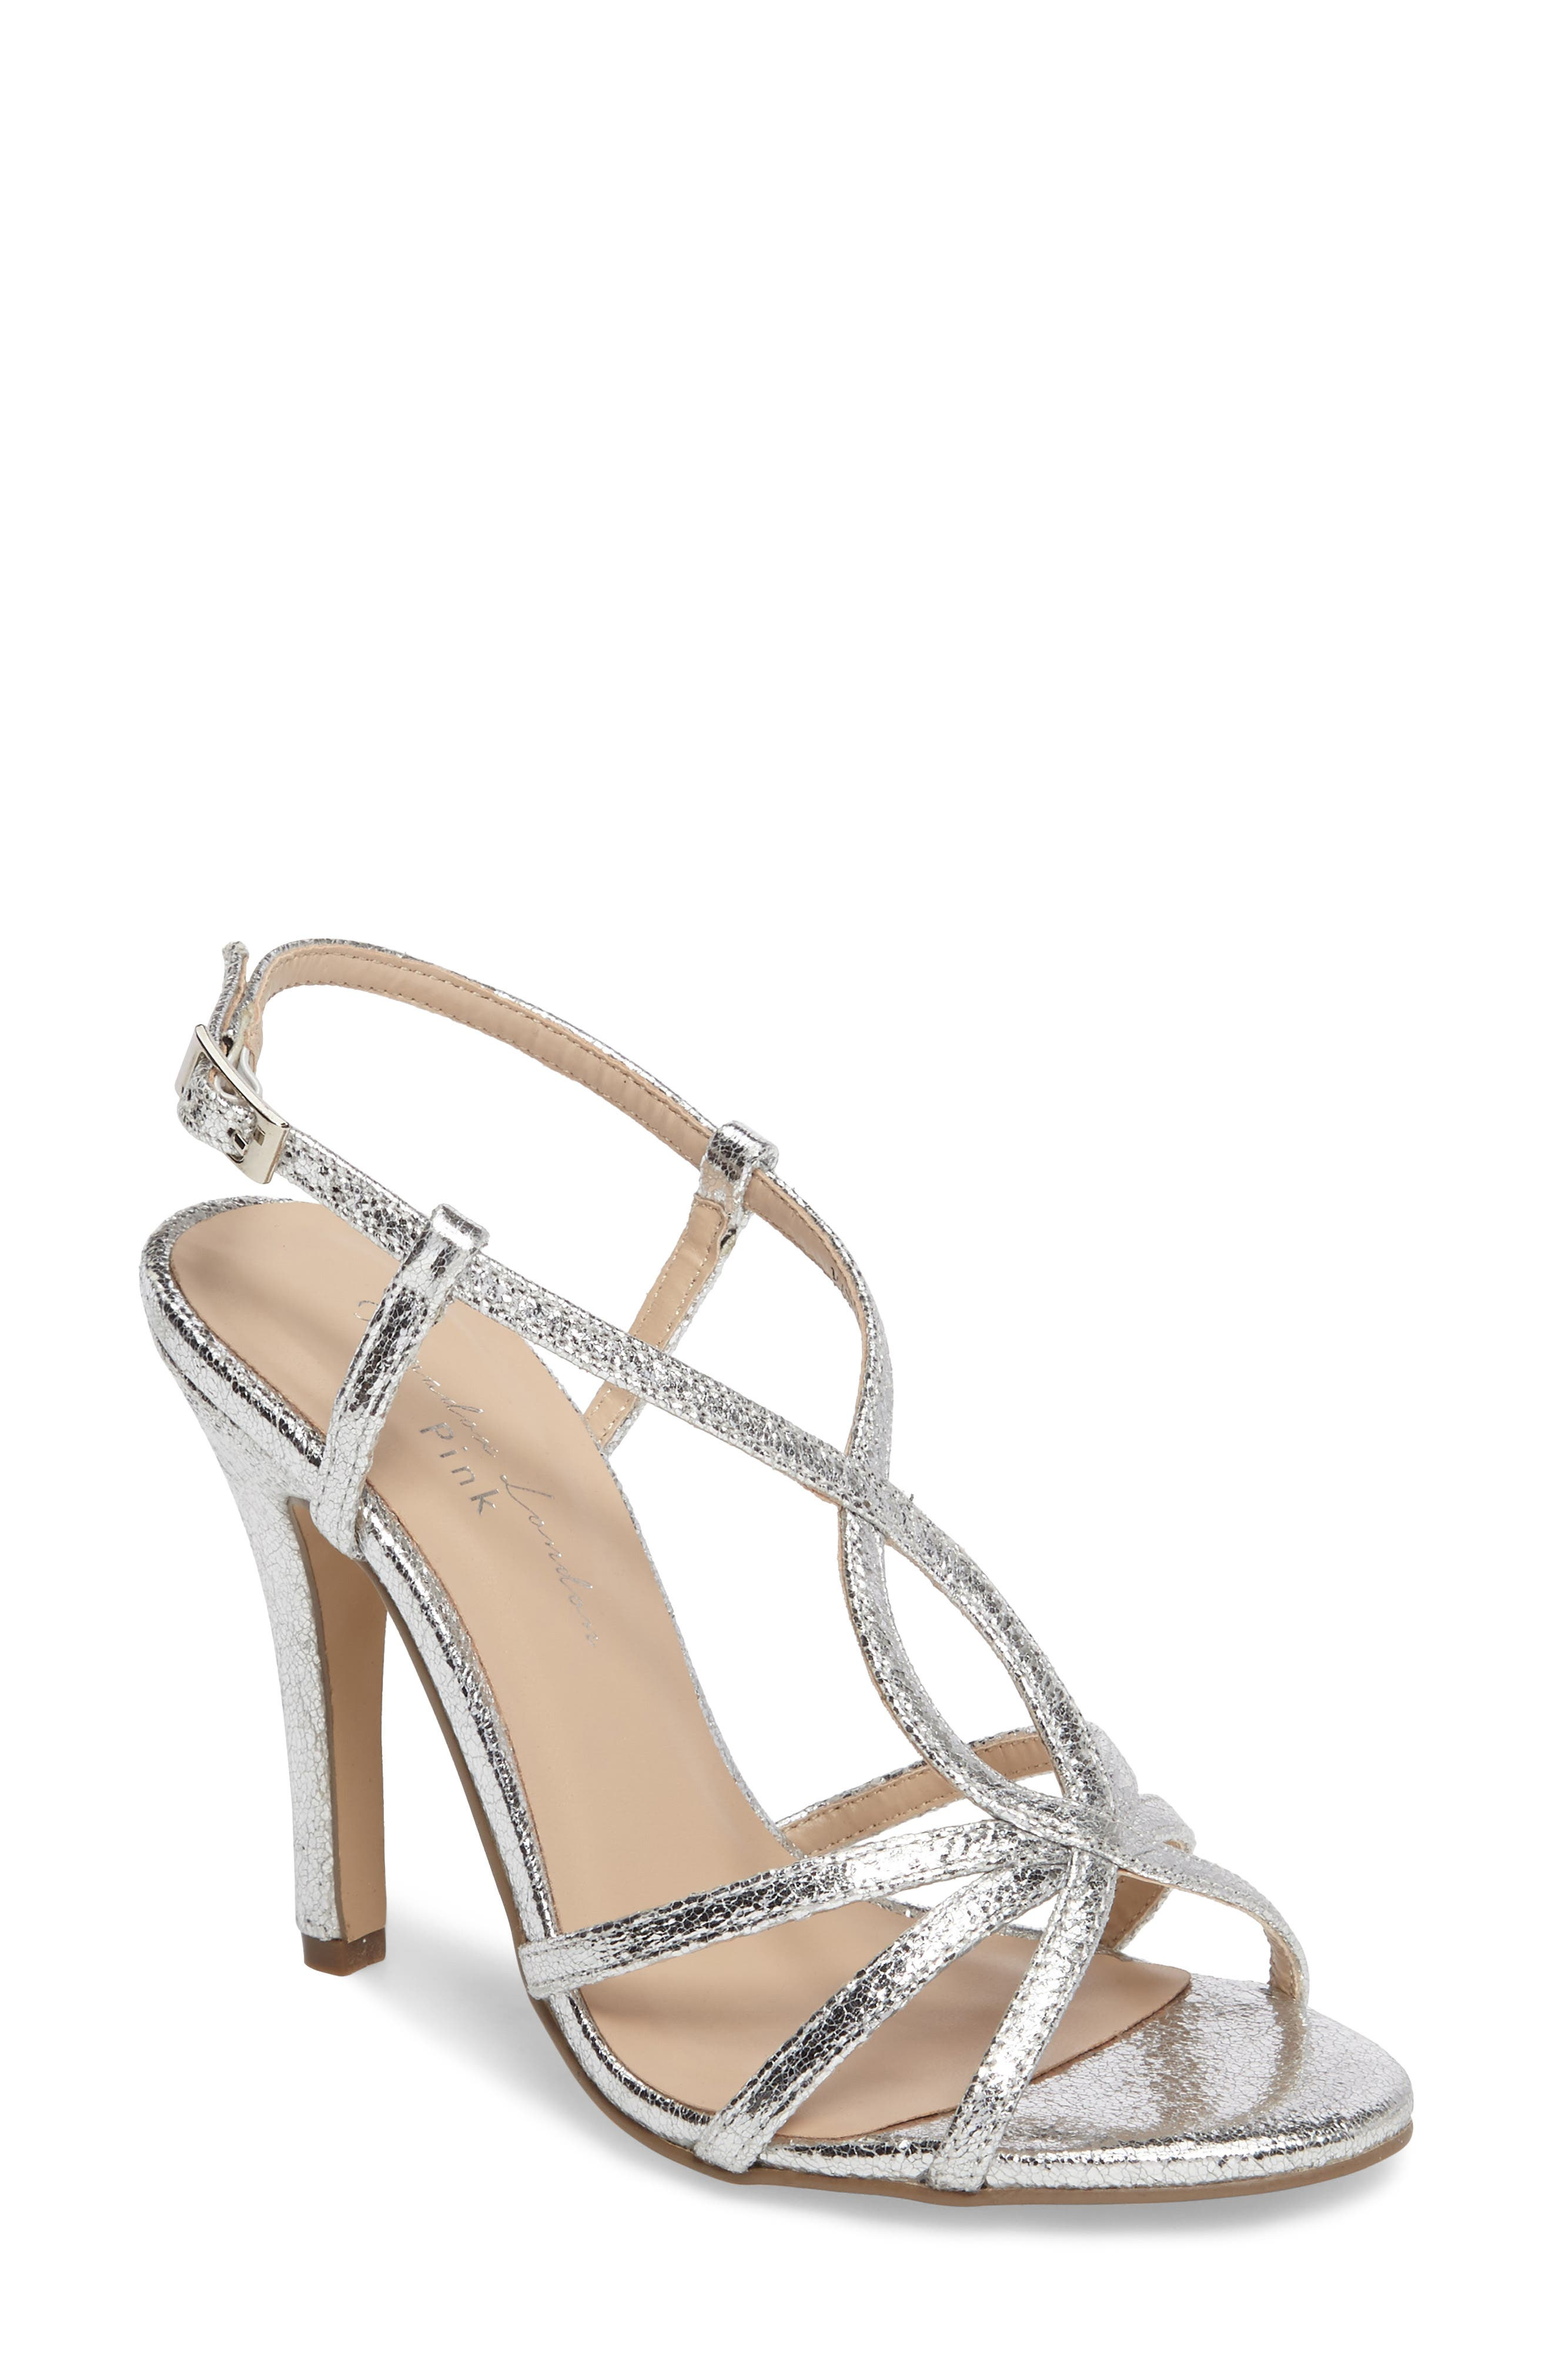 Magic Slingback Sandal,                             Main thumbnail 1, color,                             Silver